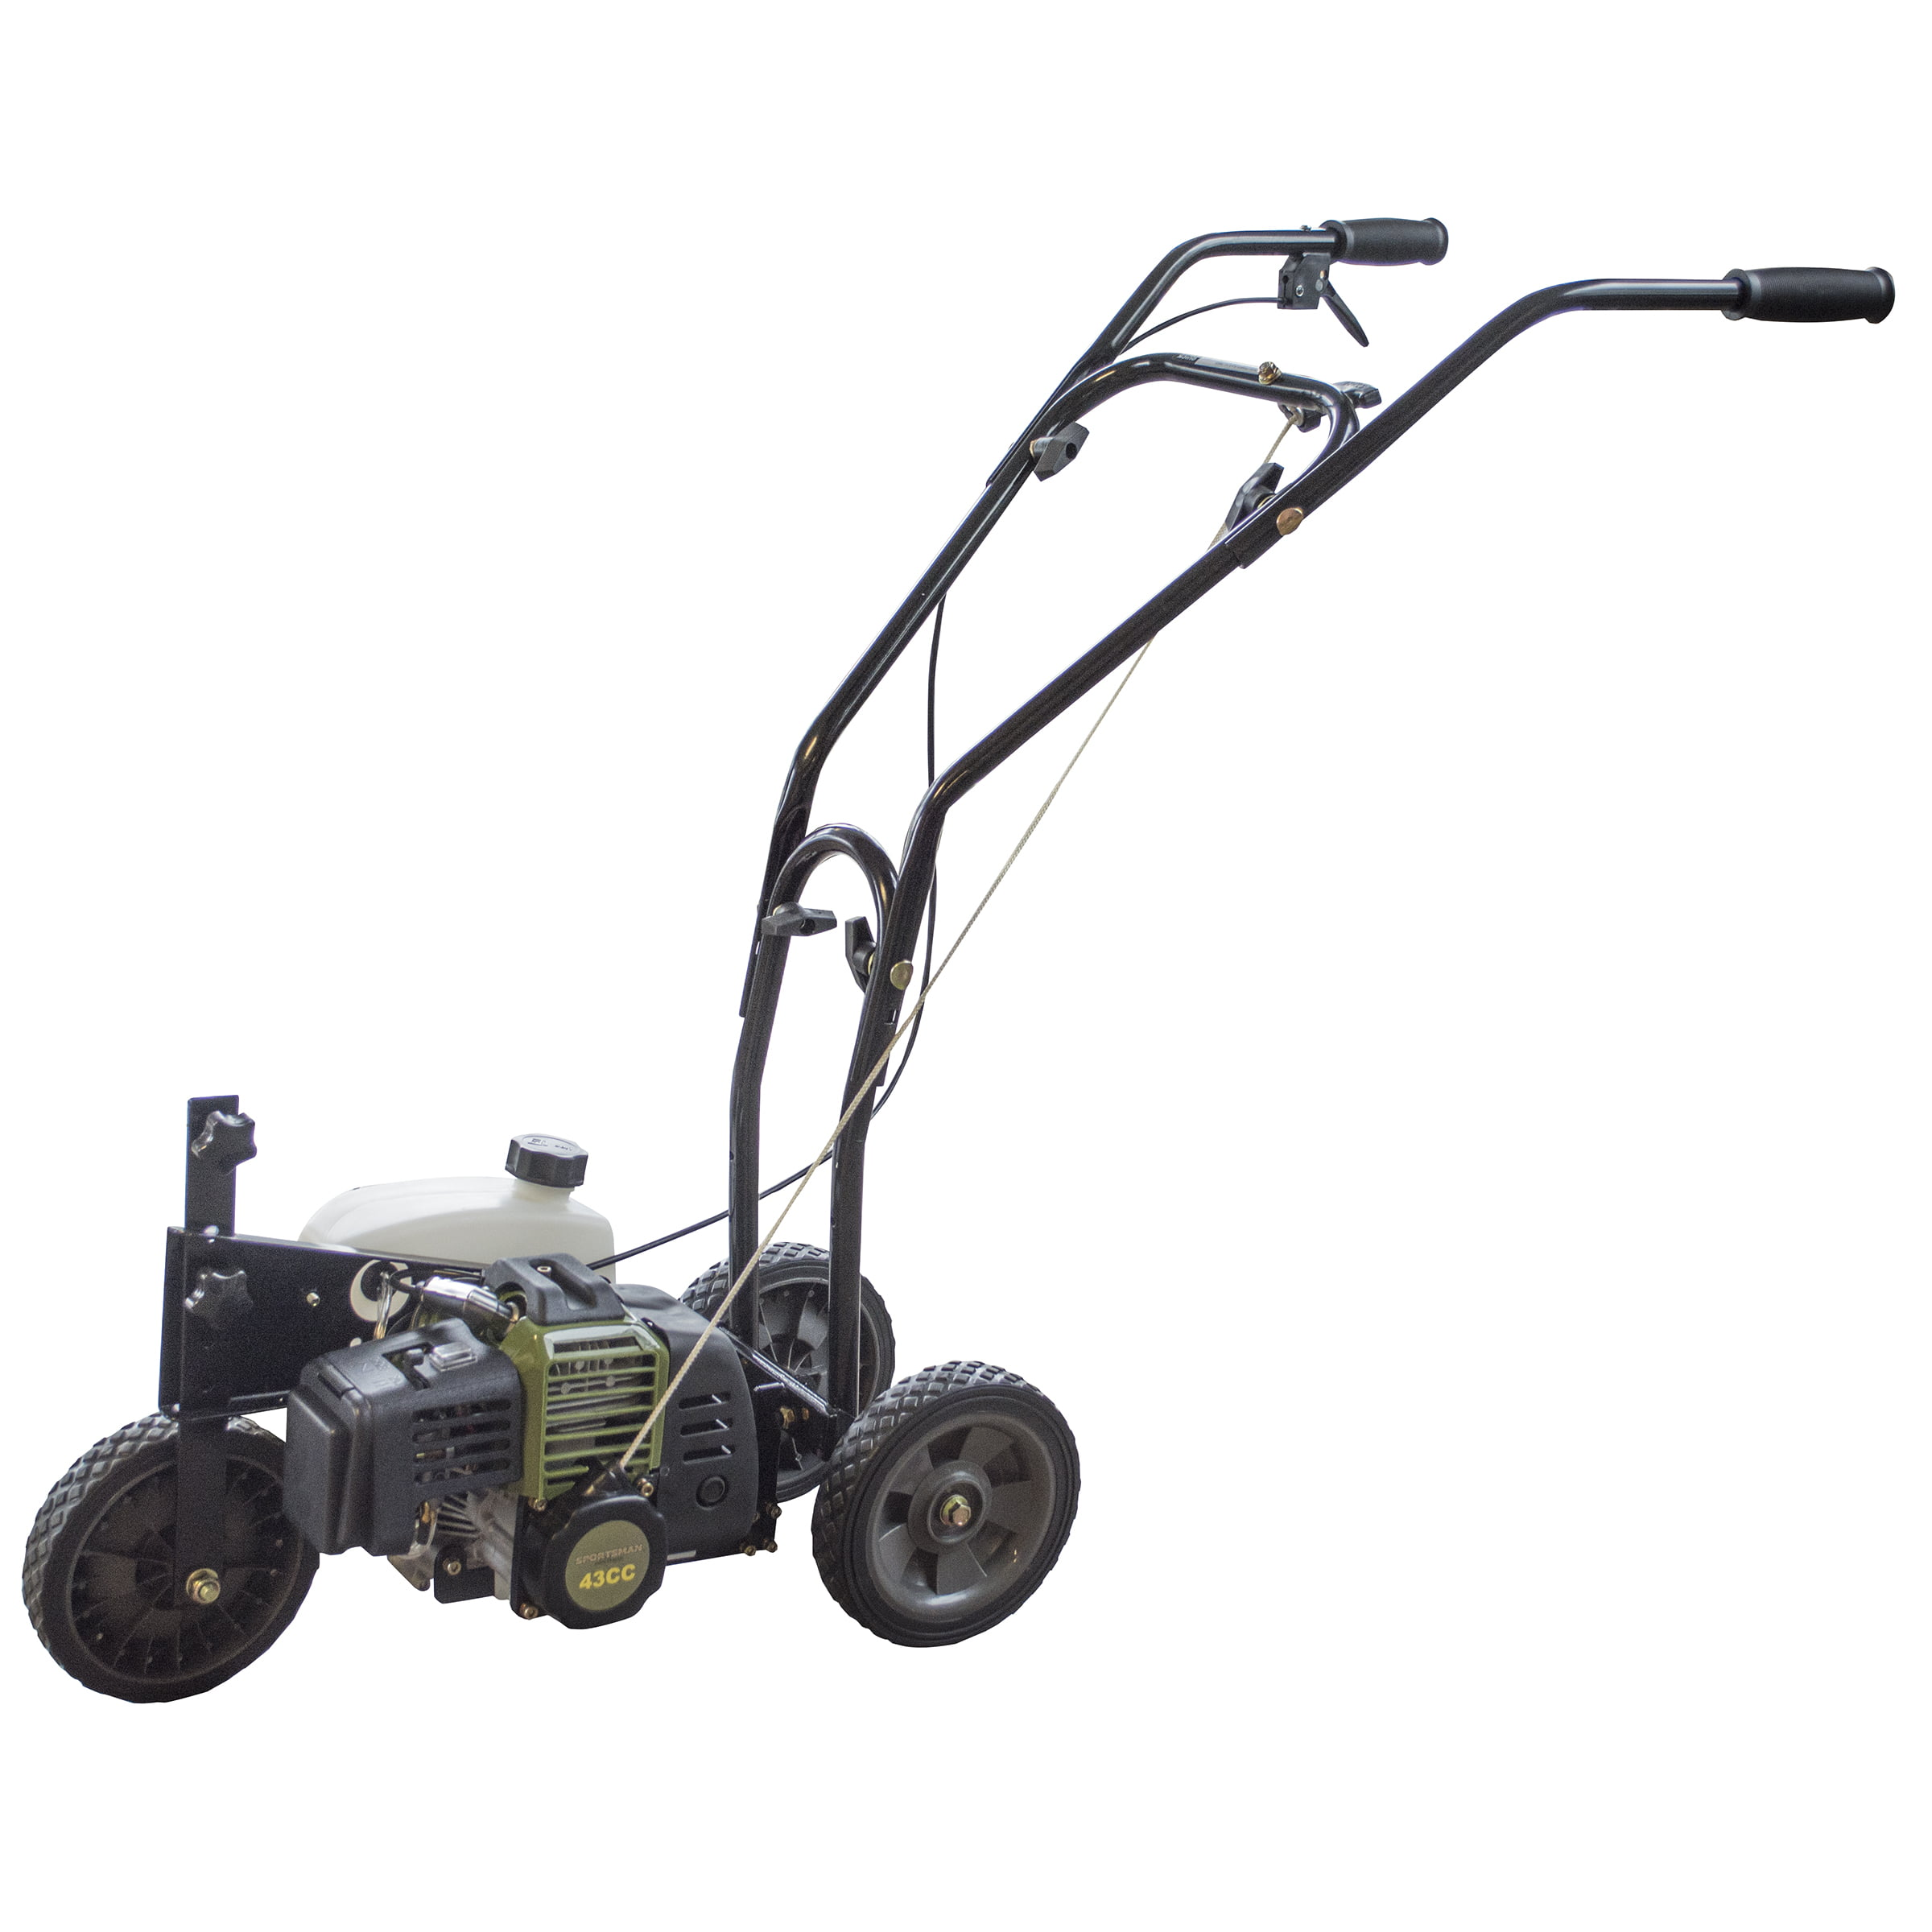 Sportsman Earth Series Recoil Start Gas Powered Edger by Bubba Rope